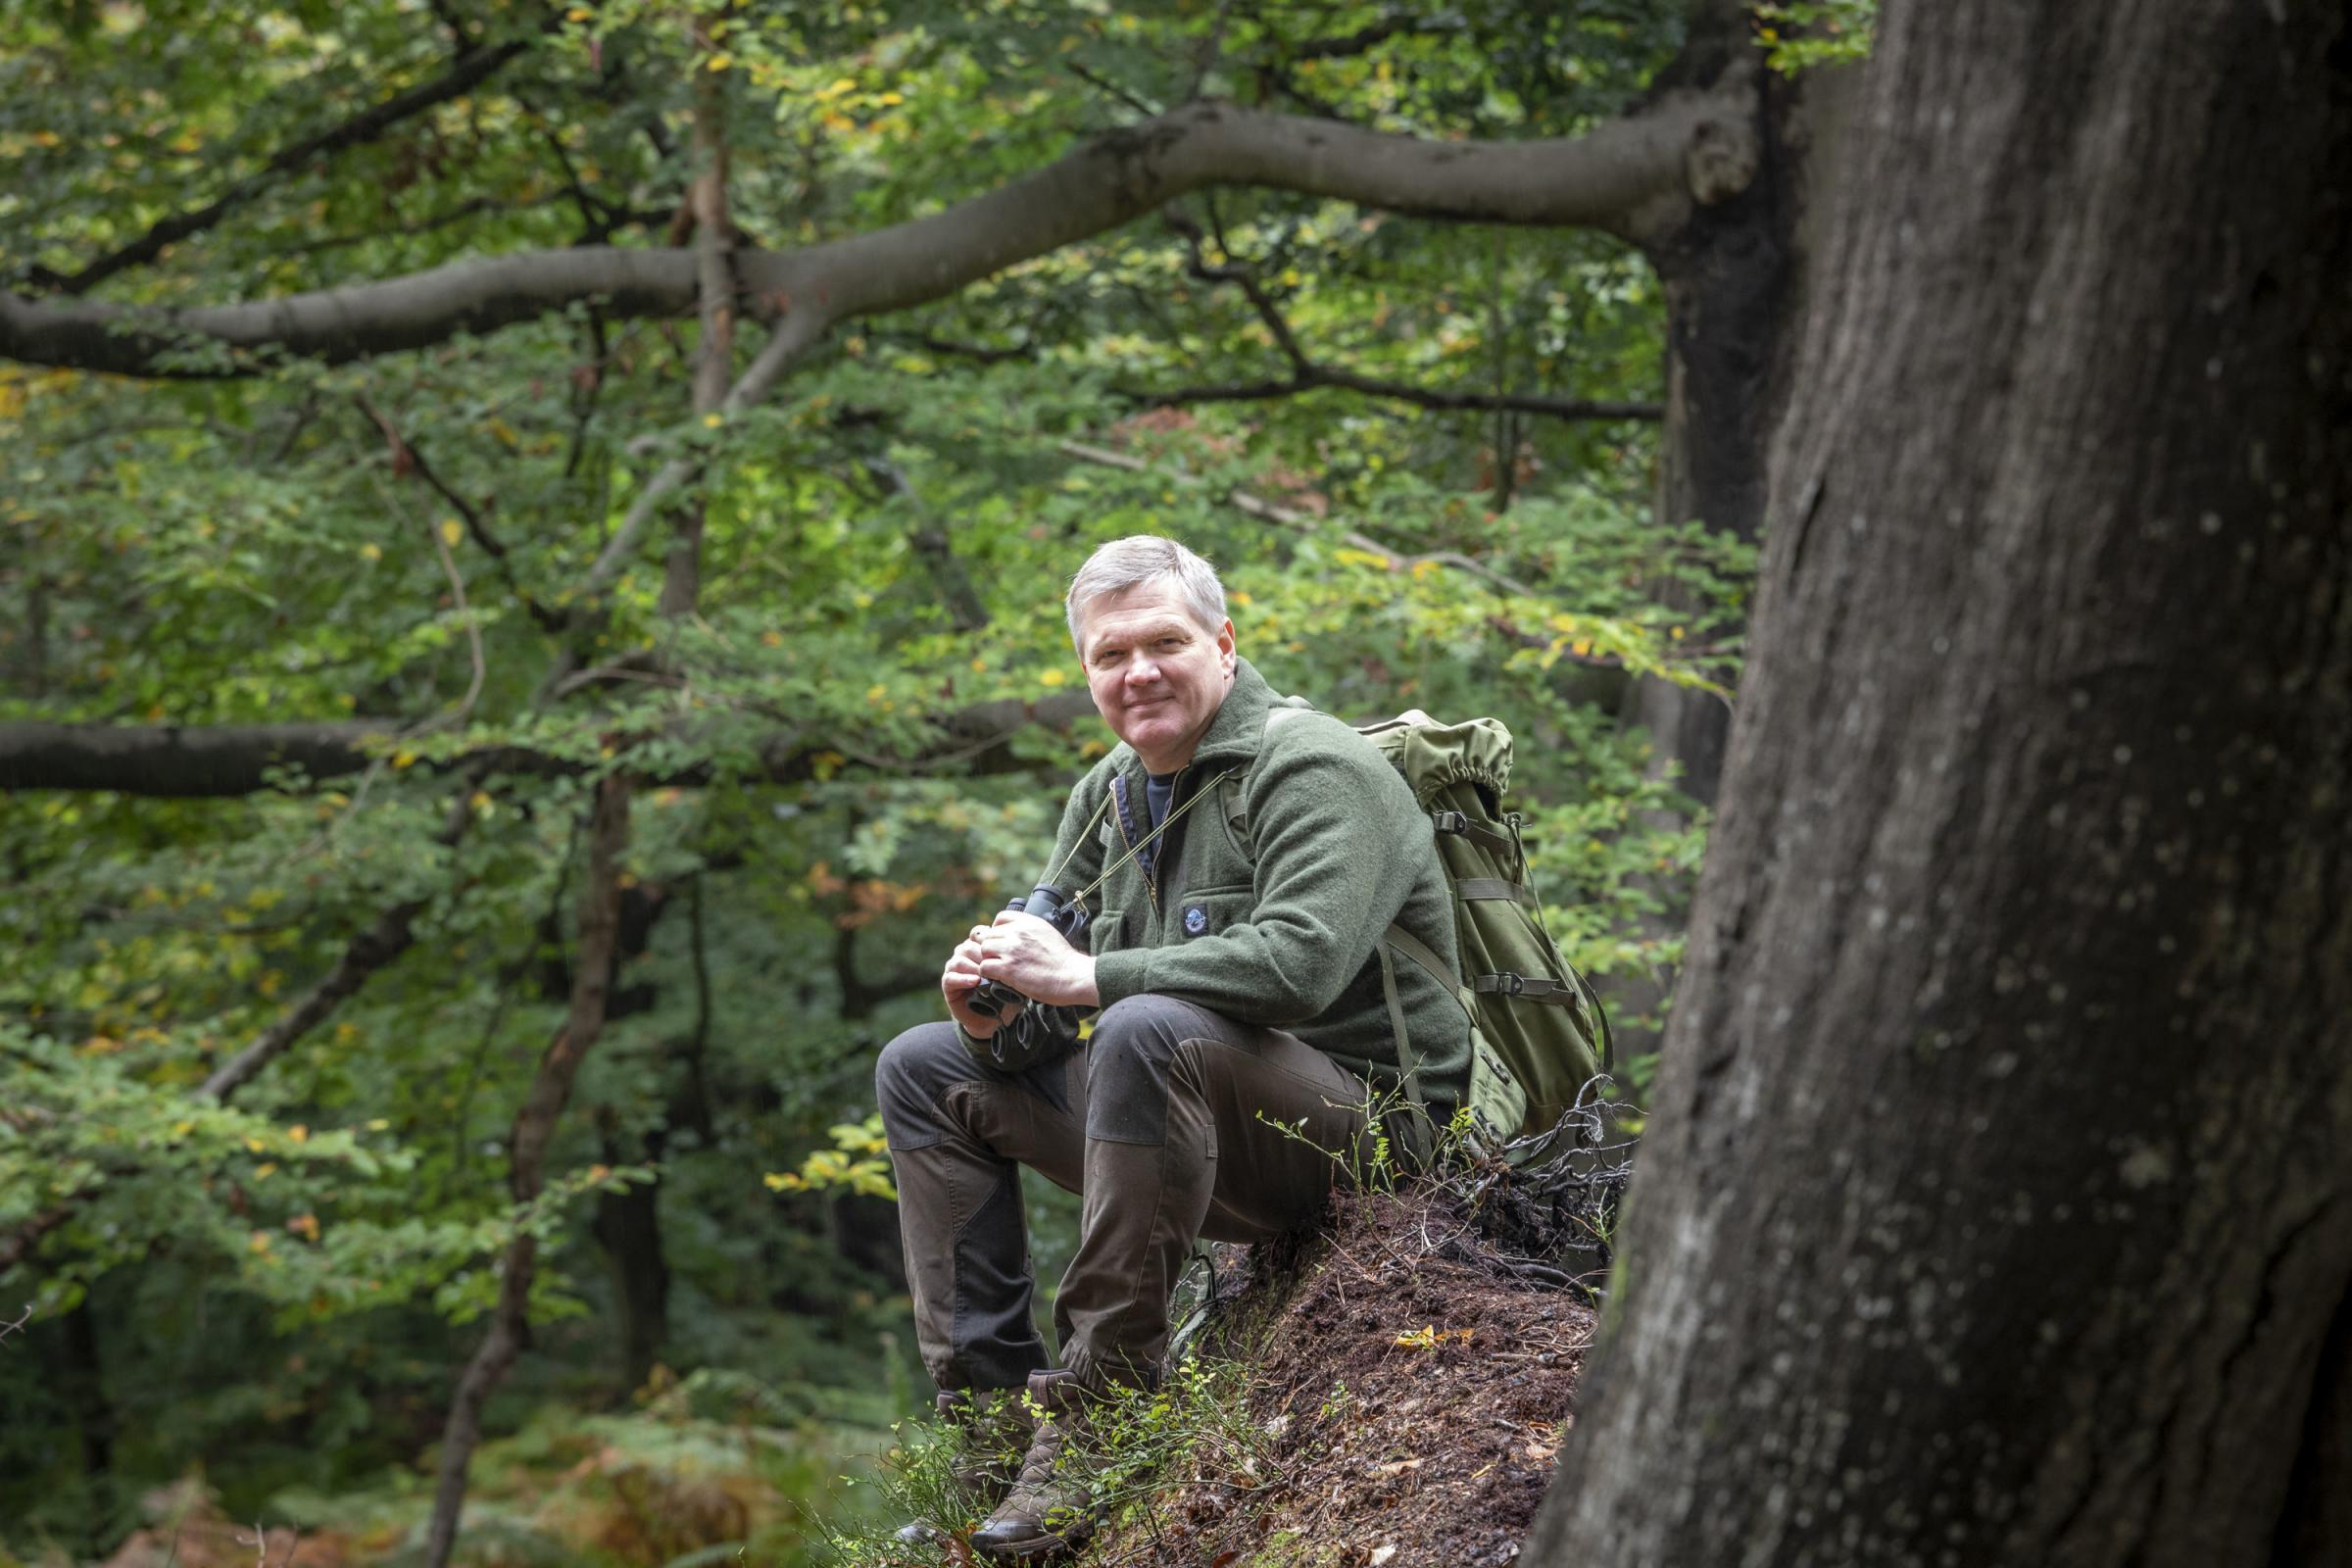 Undated Handout Photo of Ray Mears. See PA Feature BOOK Mears. Picture credit should read: PA Photo/Jonathan Buckley. WARNING: This picture must only be used to accompany PA Feature BOOK Mears. WARNING: This picture must only be used with the full